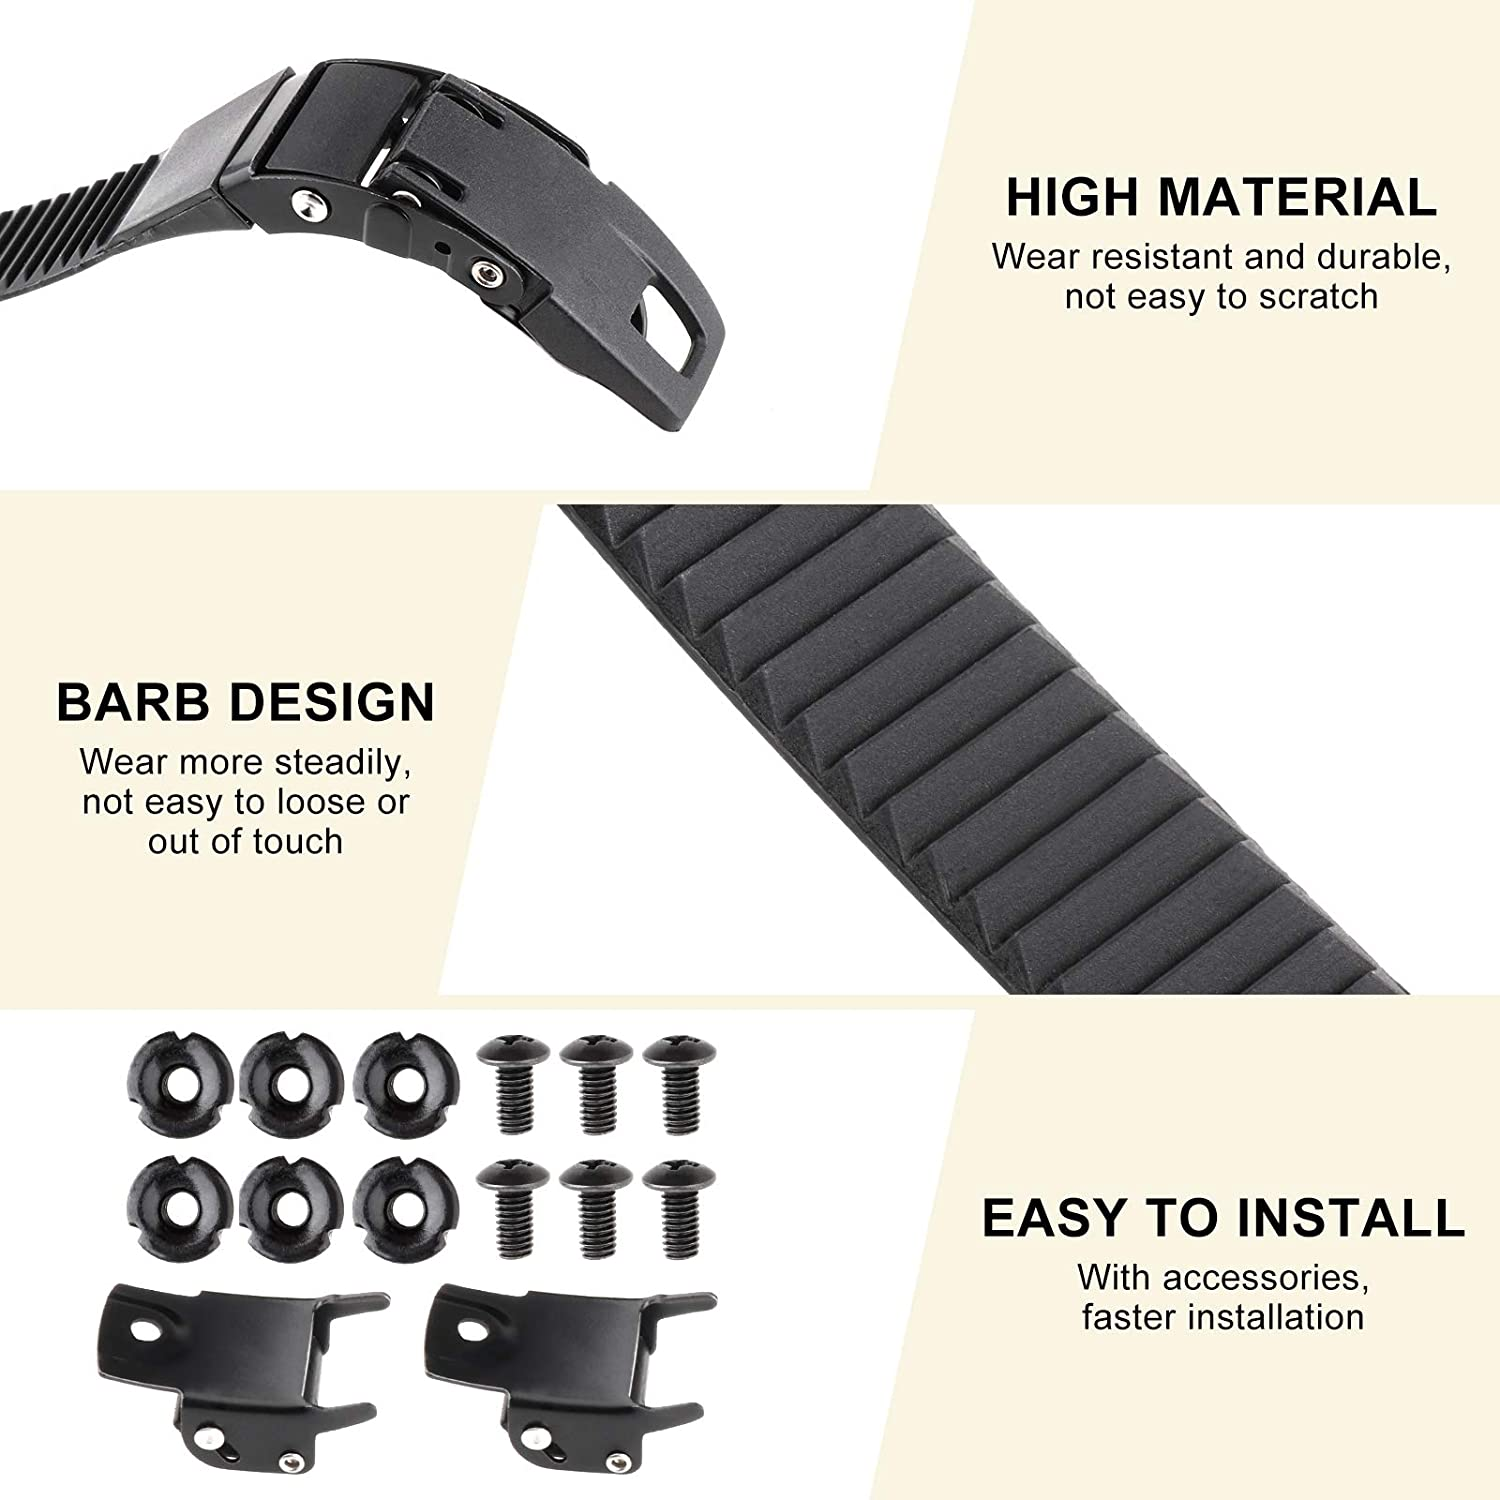 Tookie Skates Strap Set Skating Shoes with Buckle Accessory Practical Wear Resistant Sports Replacement Inline Safety Universal Clasp sy Install Quick Ten 1